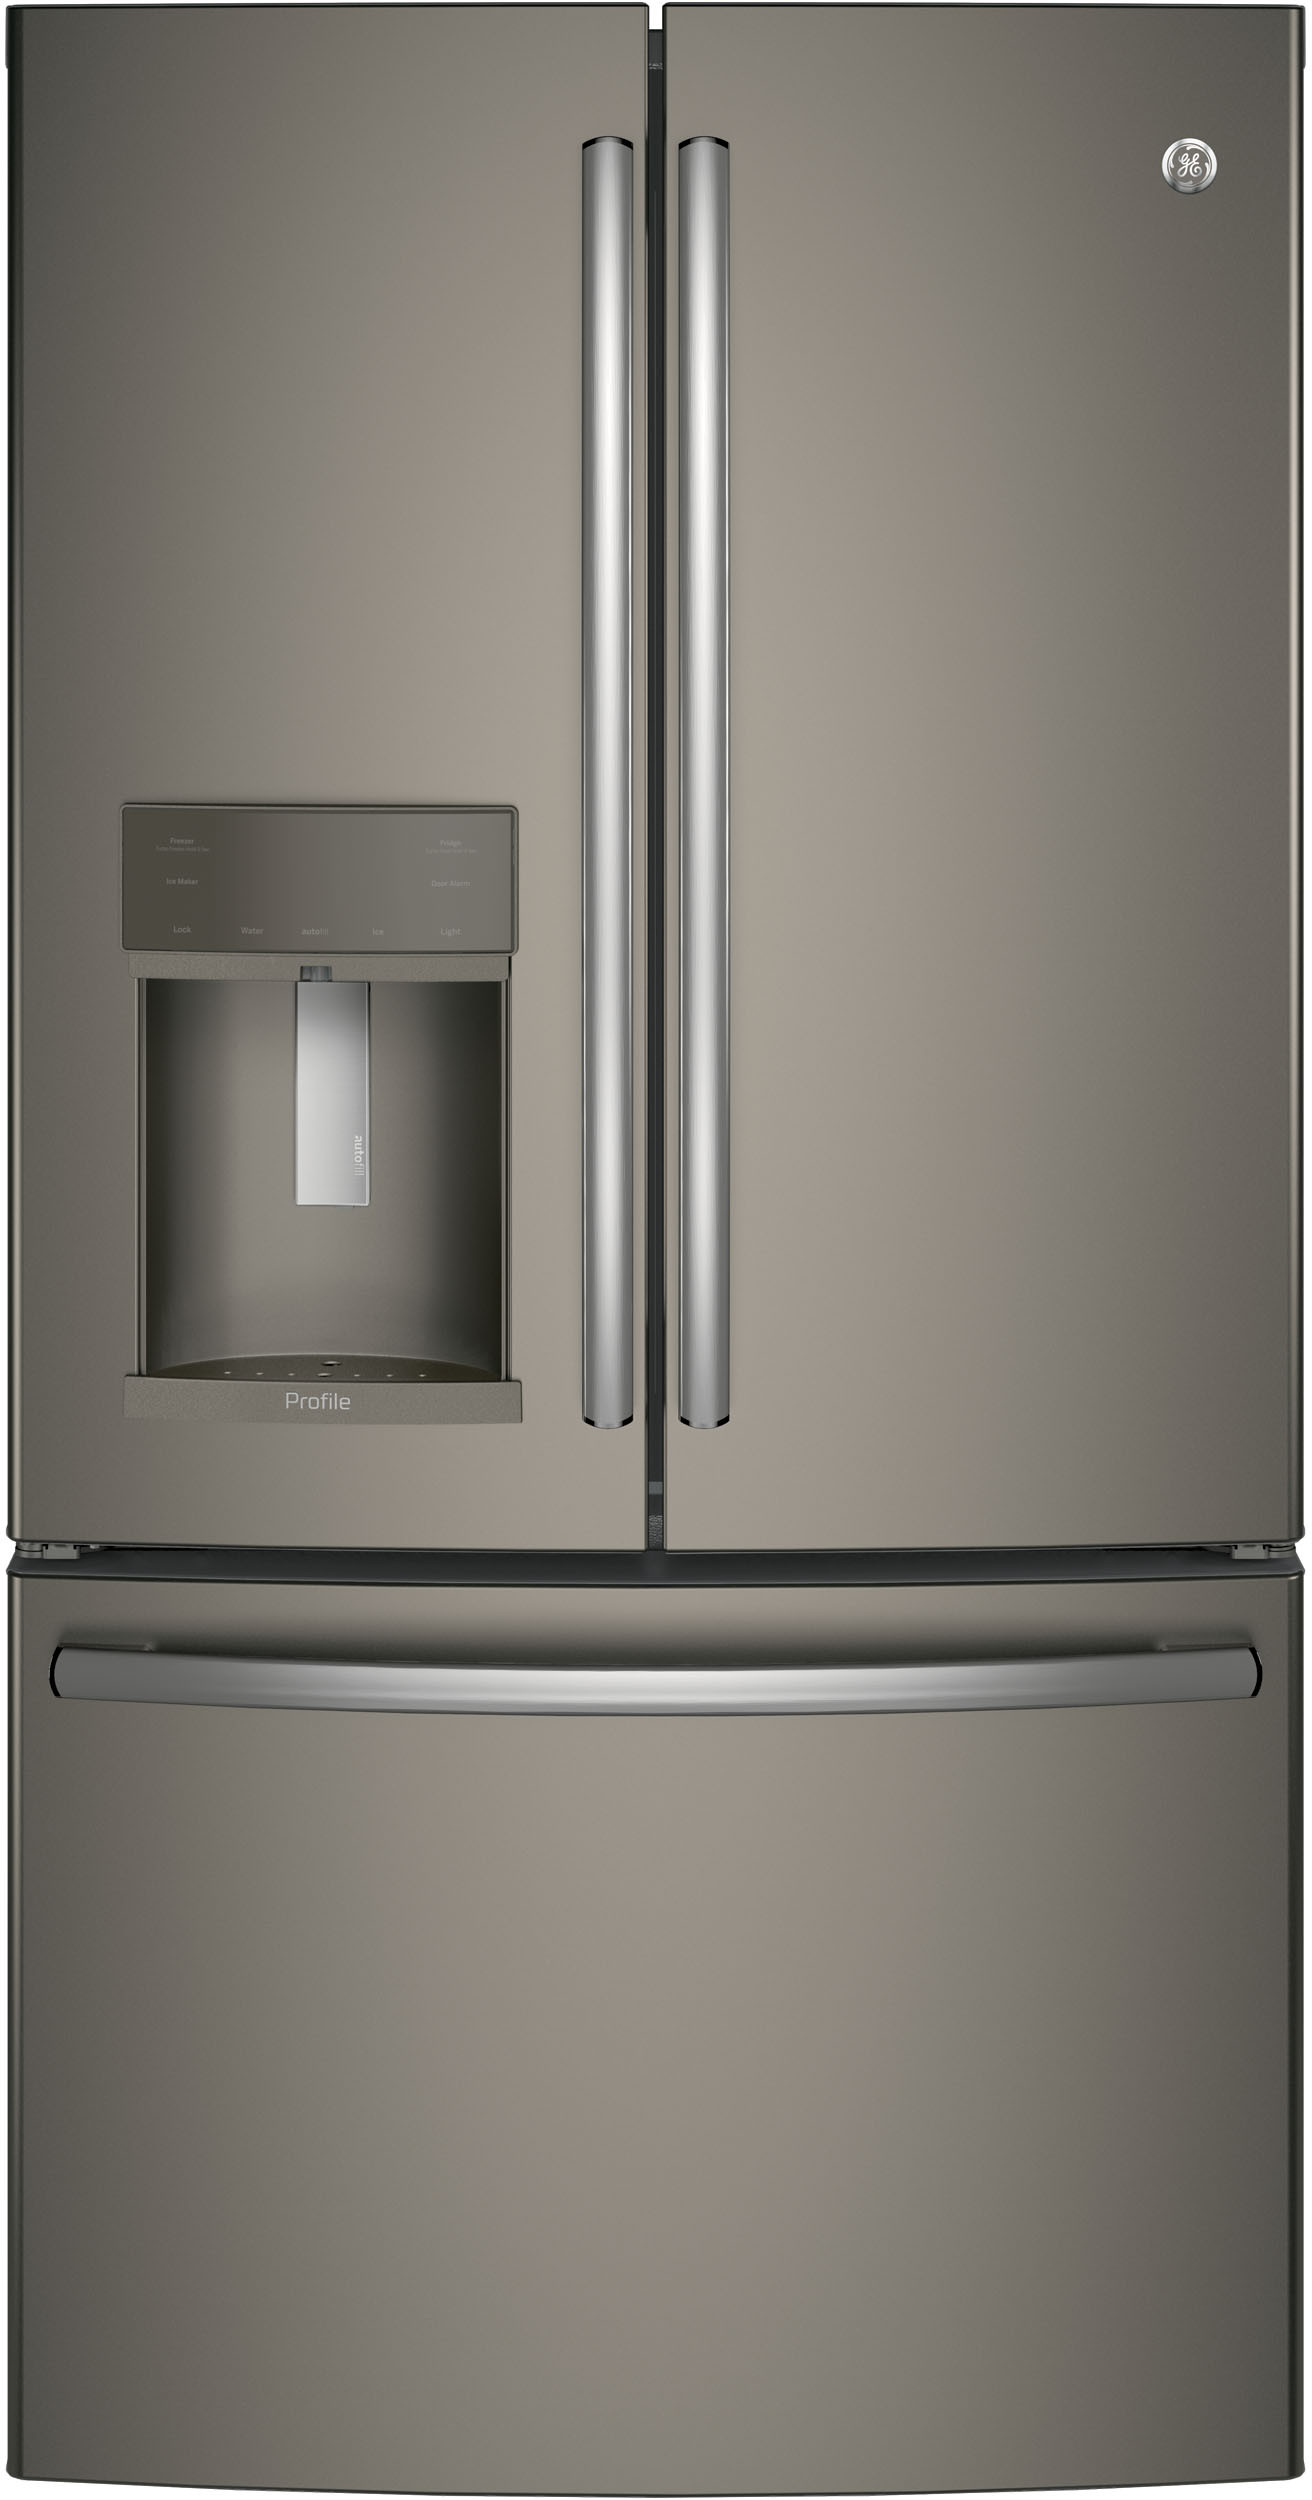 & French Door Refrigerators